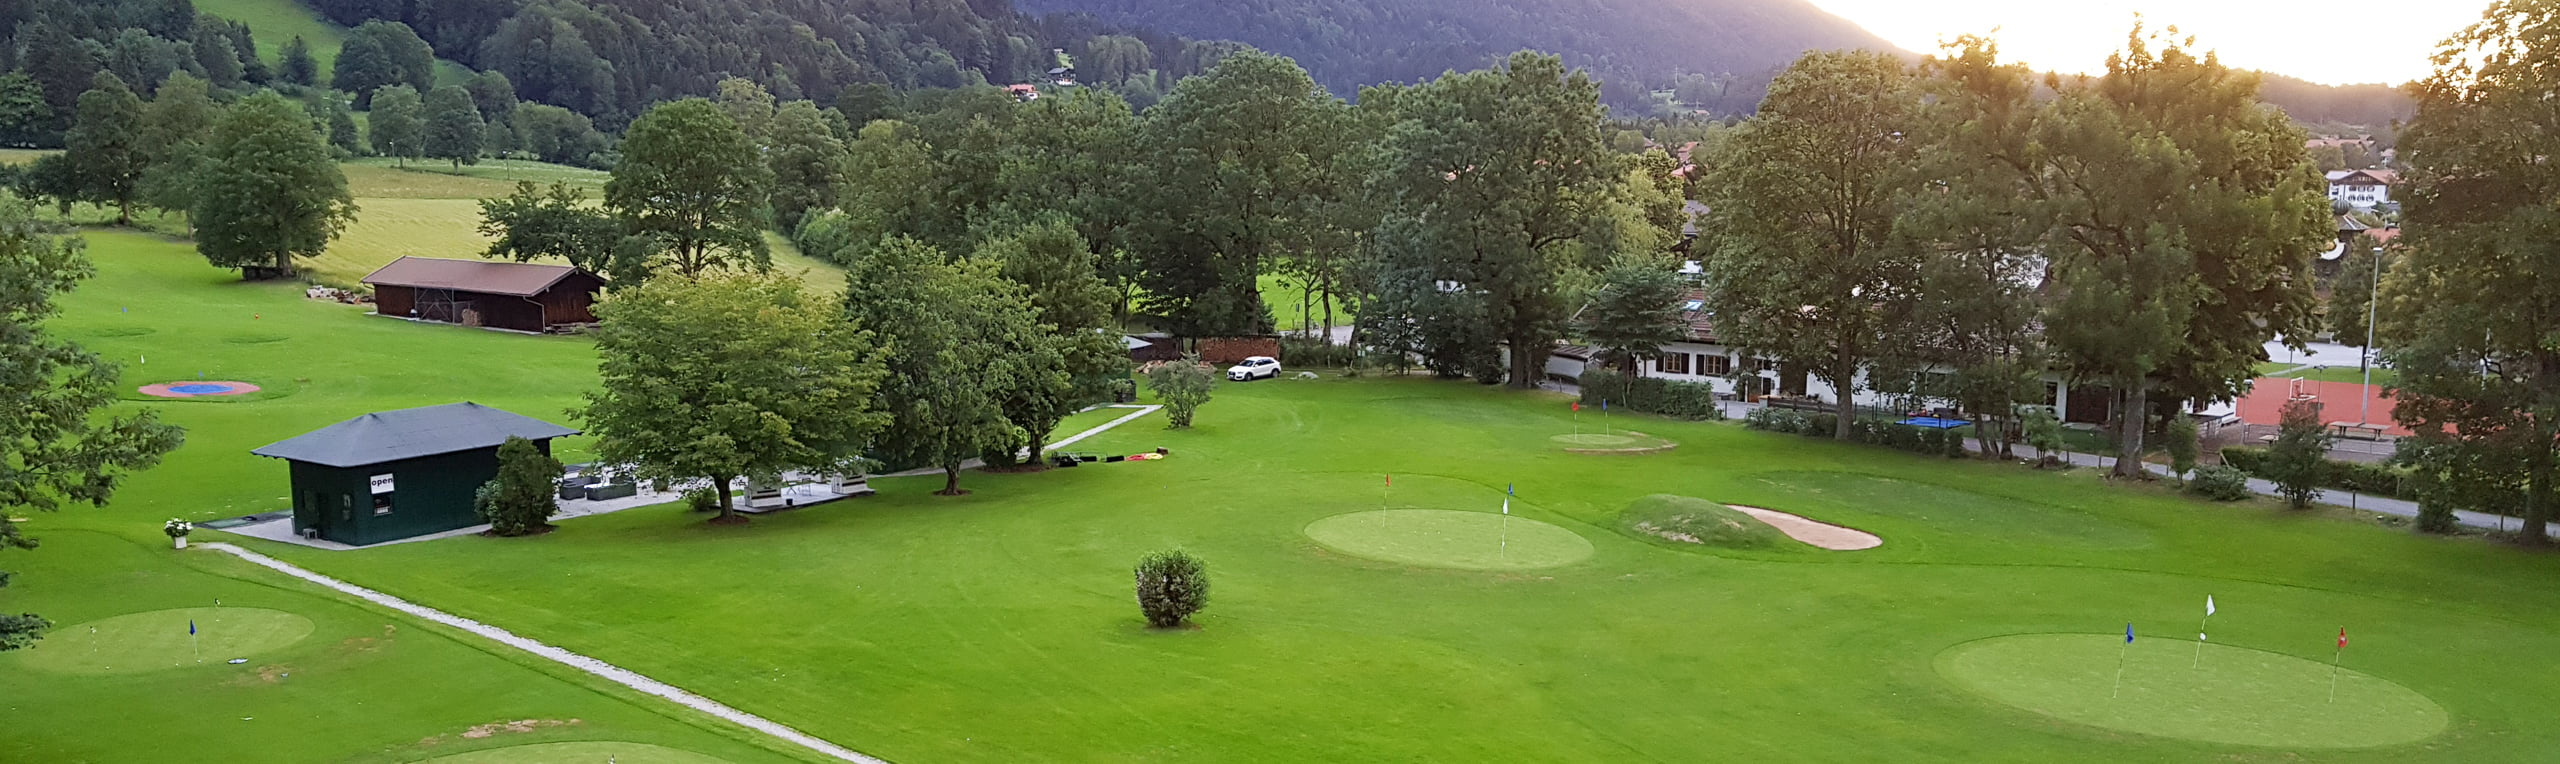 Wiesseegolf Trainingsgelände